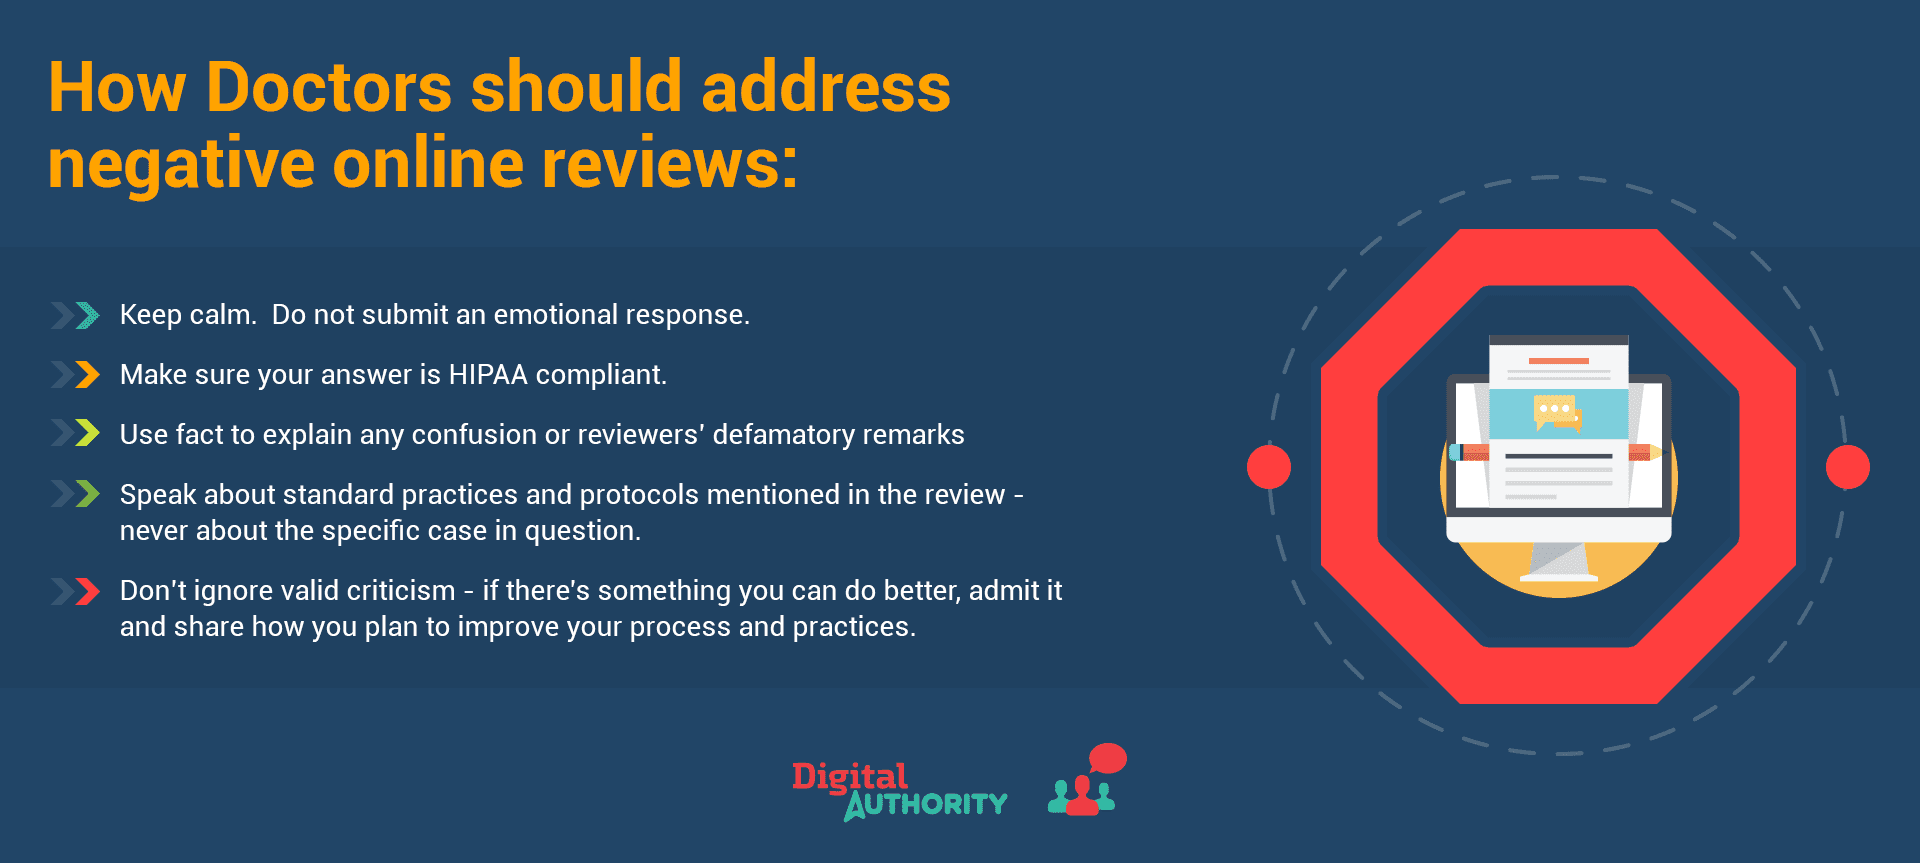 How doctors should address negative online reviews: 1. Keep calm. 2. Make sure your answer is HIPAA compliant. 3. Use to fact to explain any confusion or reviewers' defamatory remarks. 4. Speak about standard practices and protocols mentioned in the review - never about the specific case in question. 5. Don't ignore valid criticism.